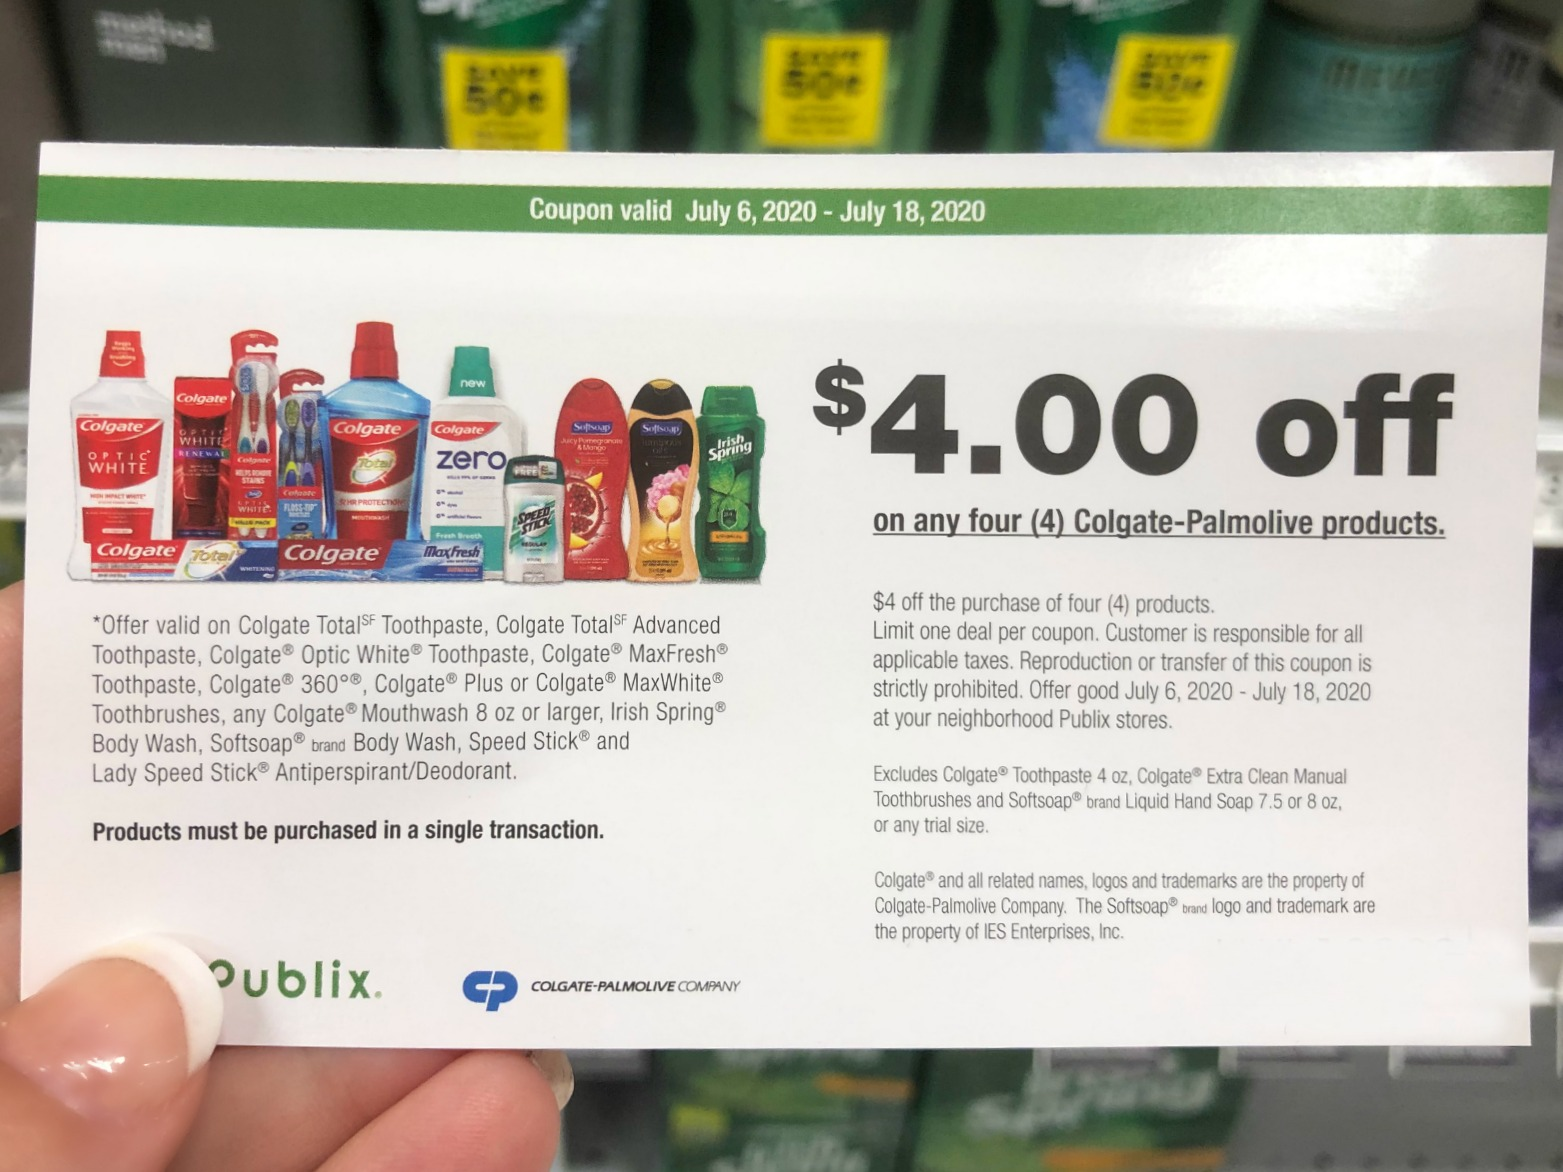 New Colgate-Palmolive Publix Coupon Valid Through 1/25 on I Heart Publix